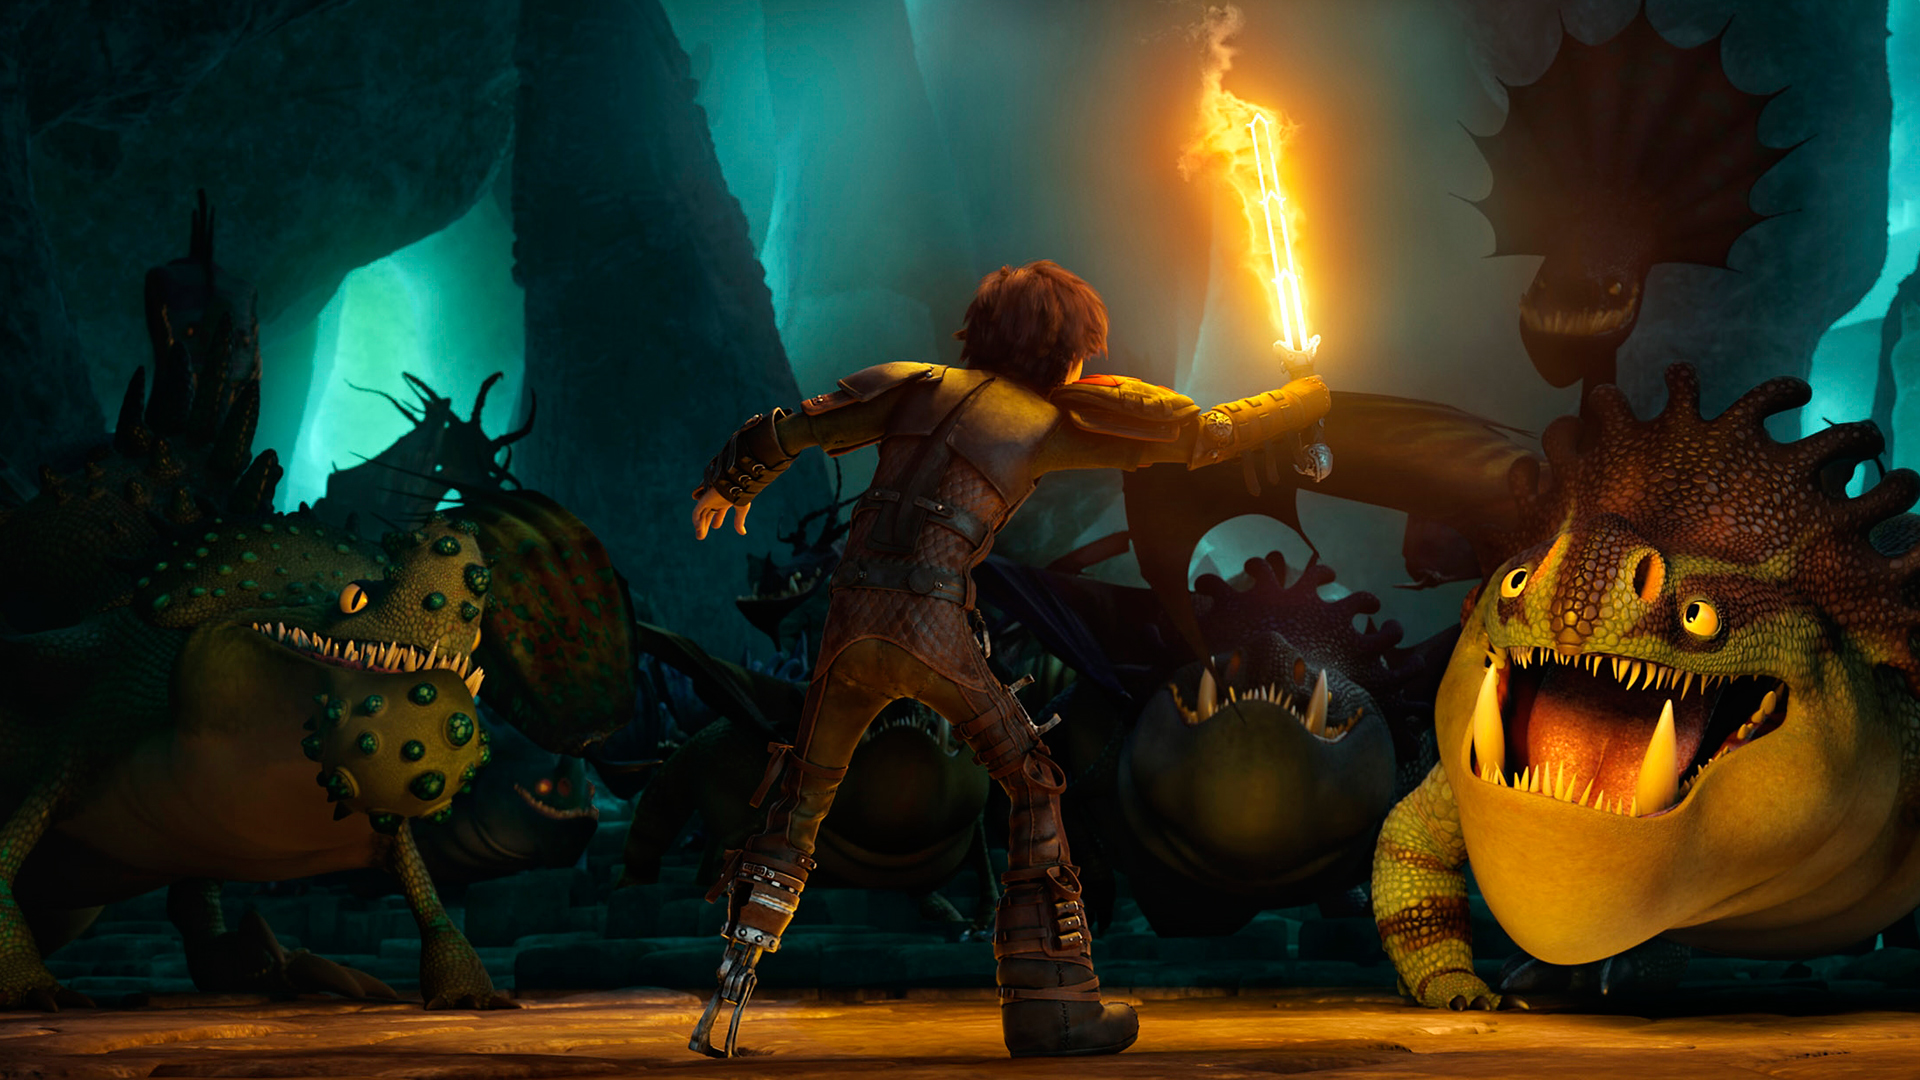 hiccup how to train your dragon 2 0e wallpaper hd